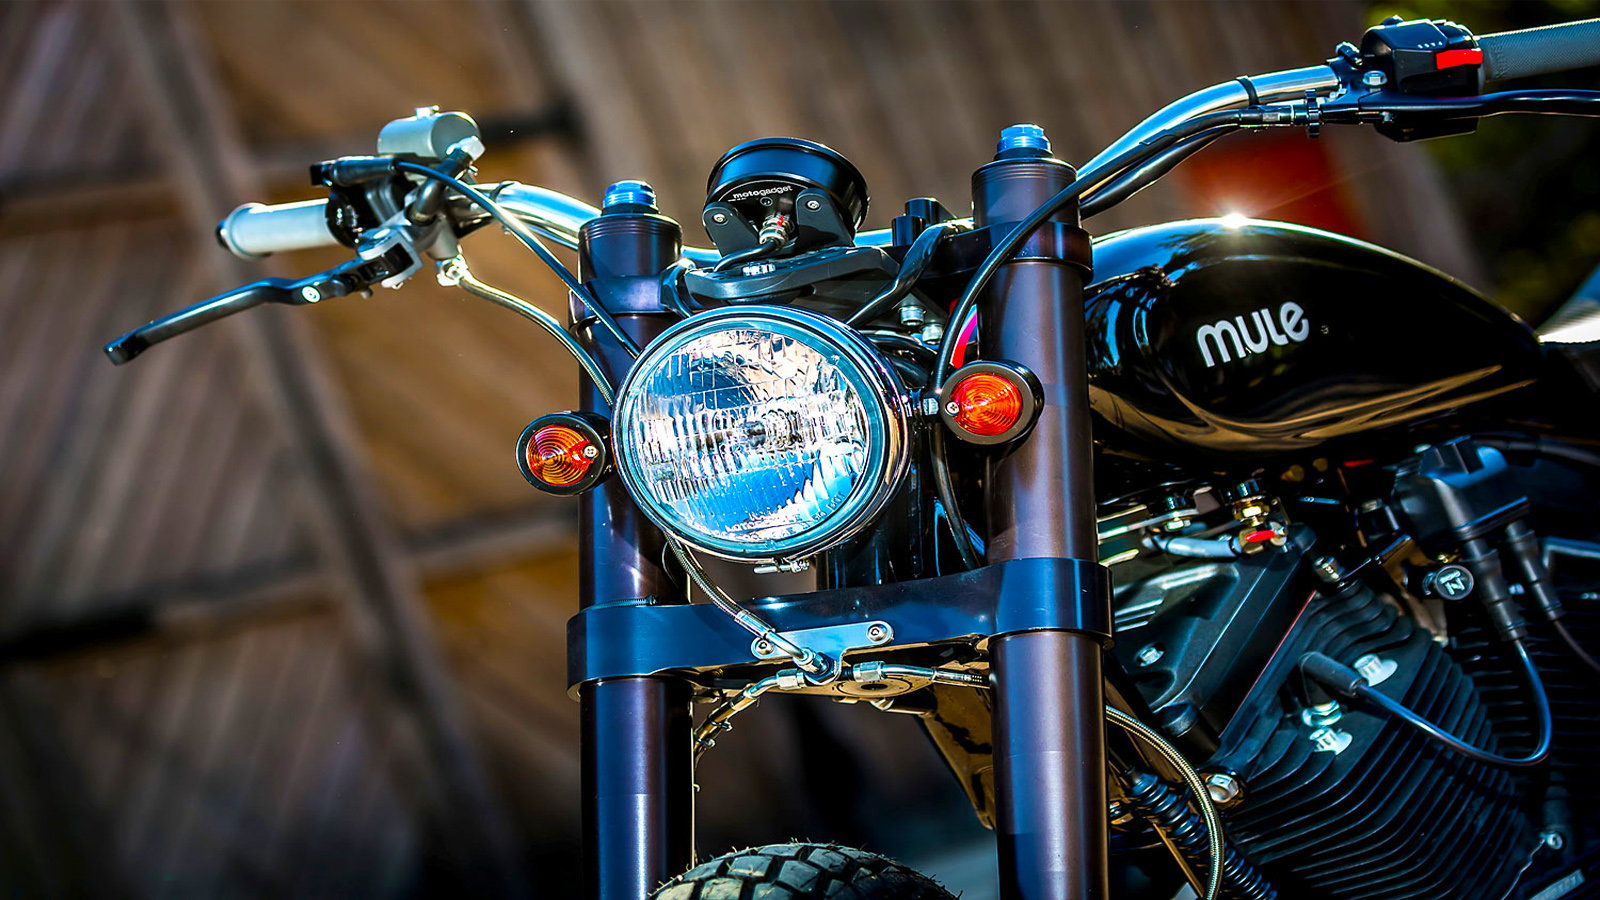 883 Tracker From Mule Motorcycles is Rupert's Ride